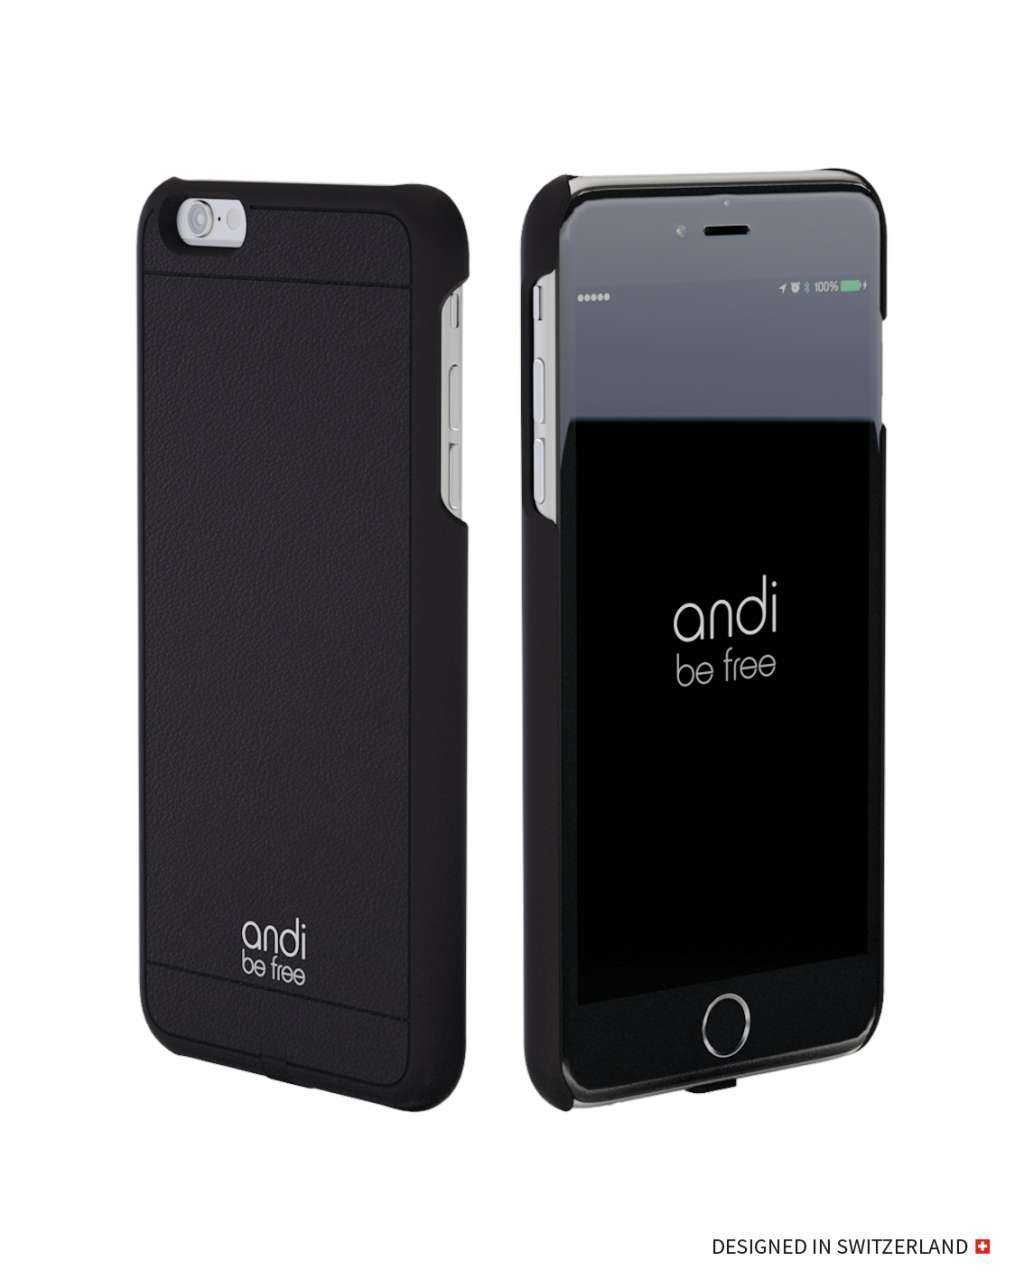 Image of andi be free Apple iPhone 6S / 6 Hülle - Wireless Charging Case - schwarz